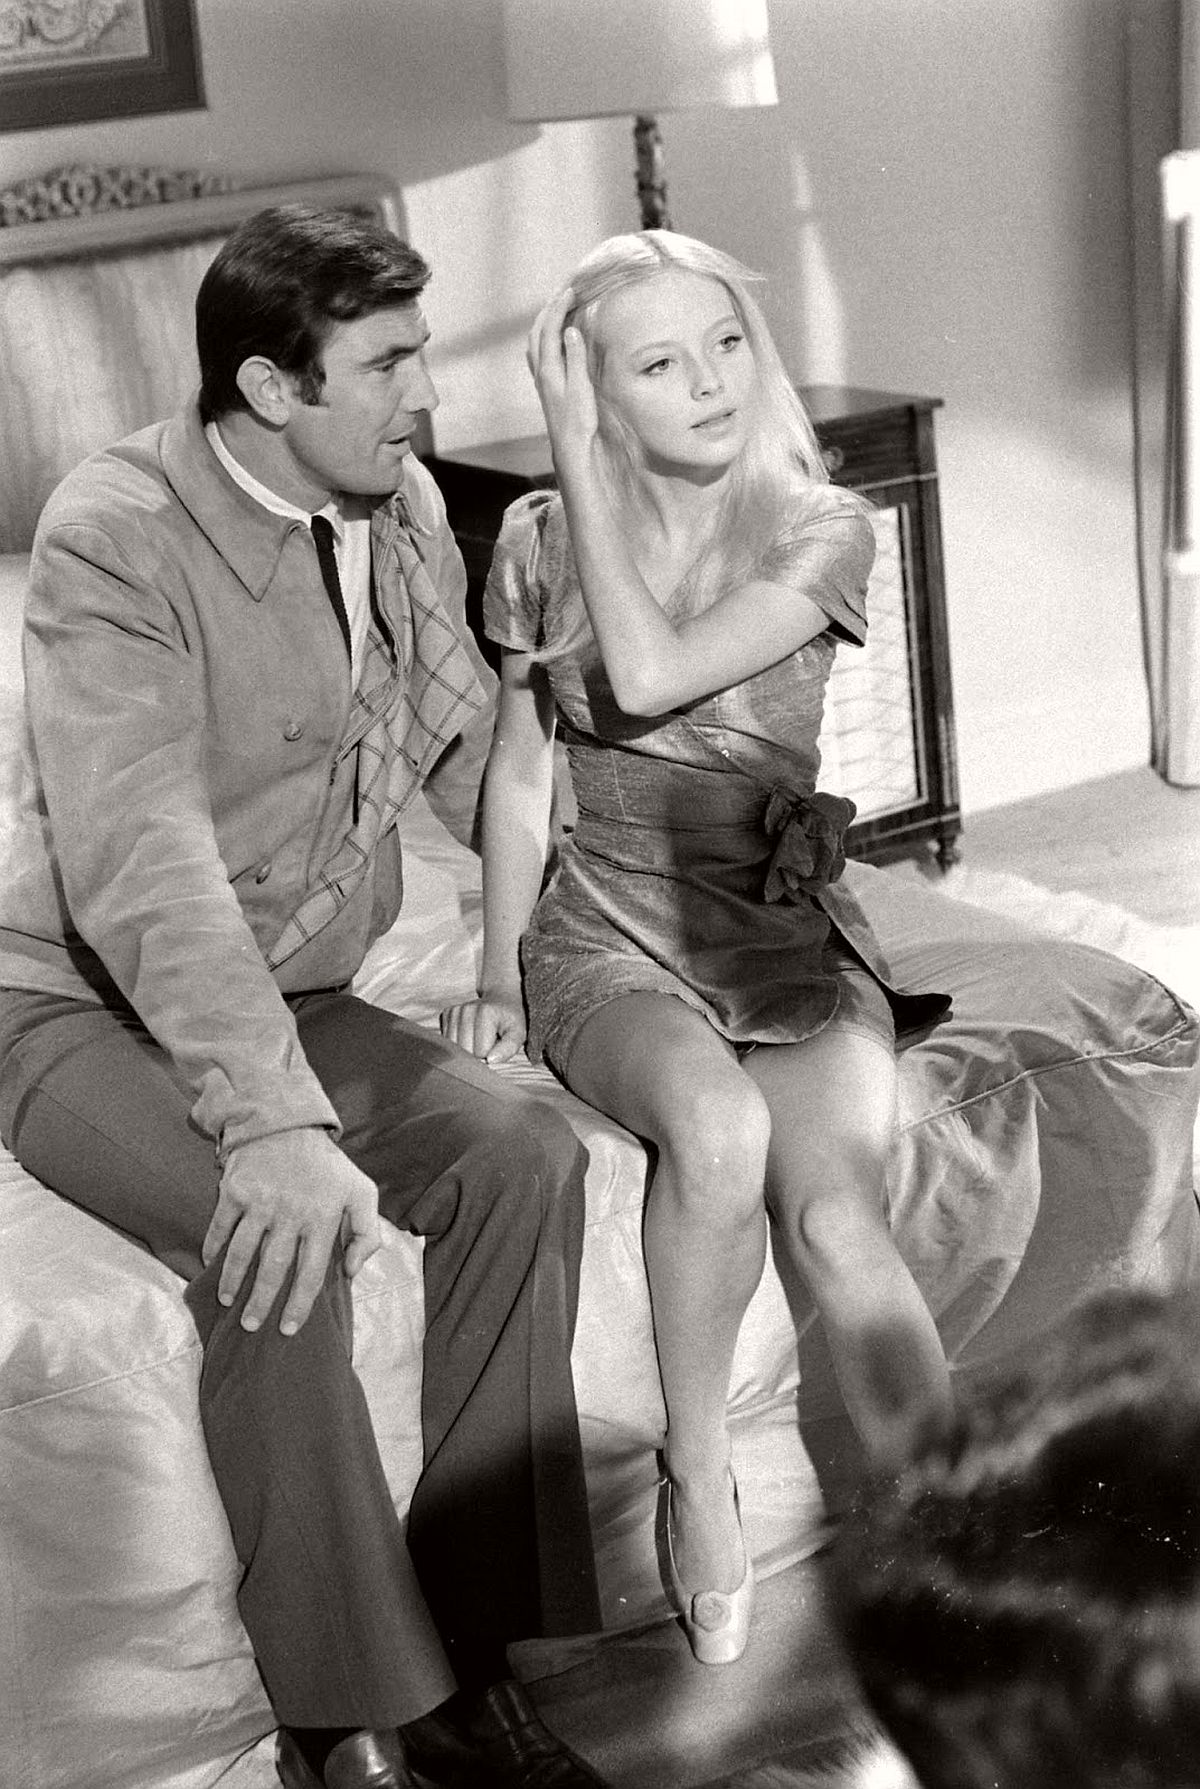 George Lazenby and Bond Girl hopeful Agneta Eckemyr, 1967.